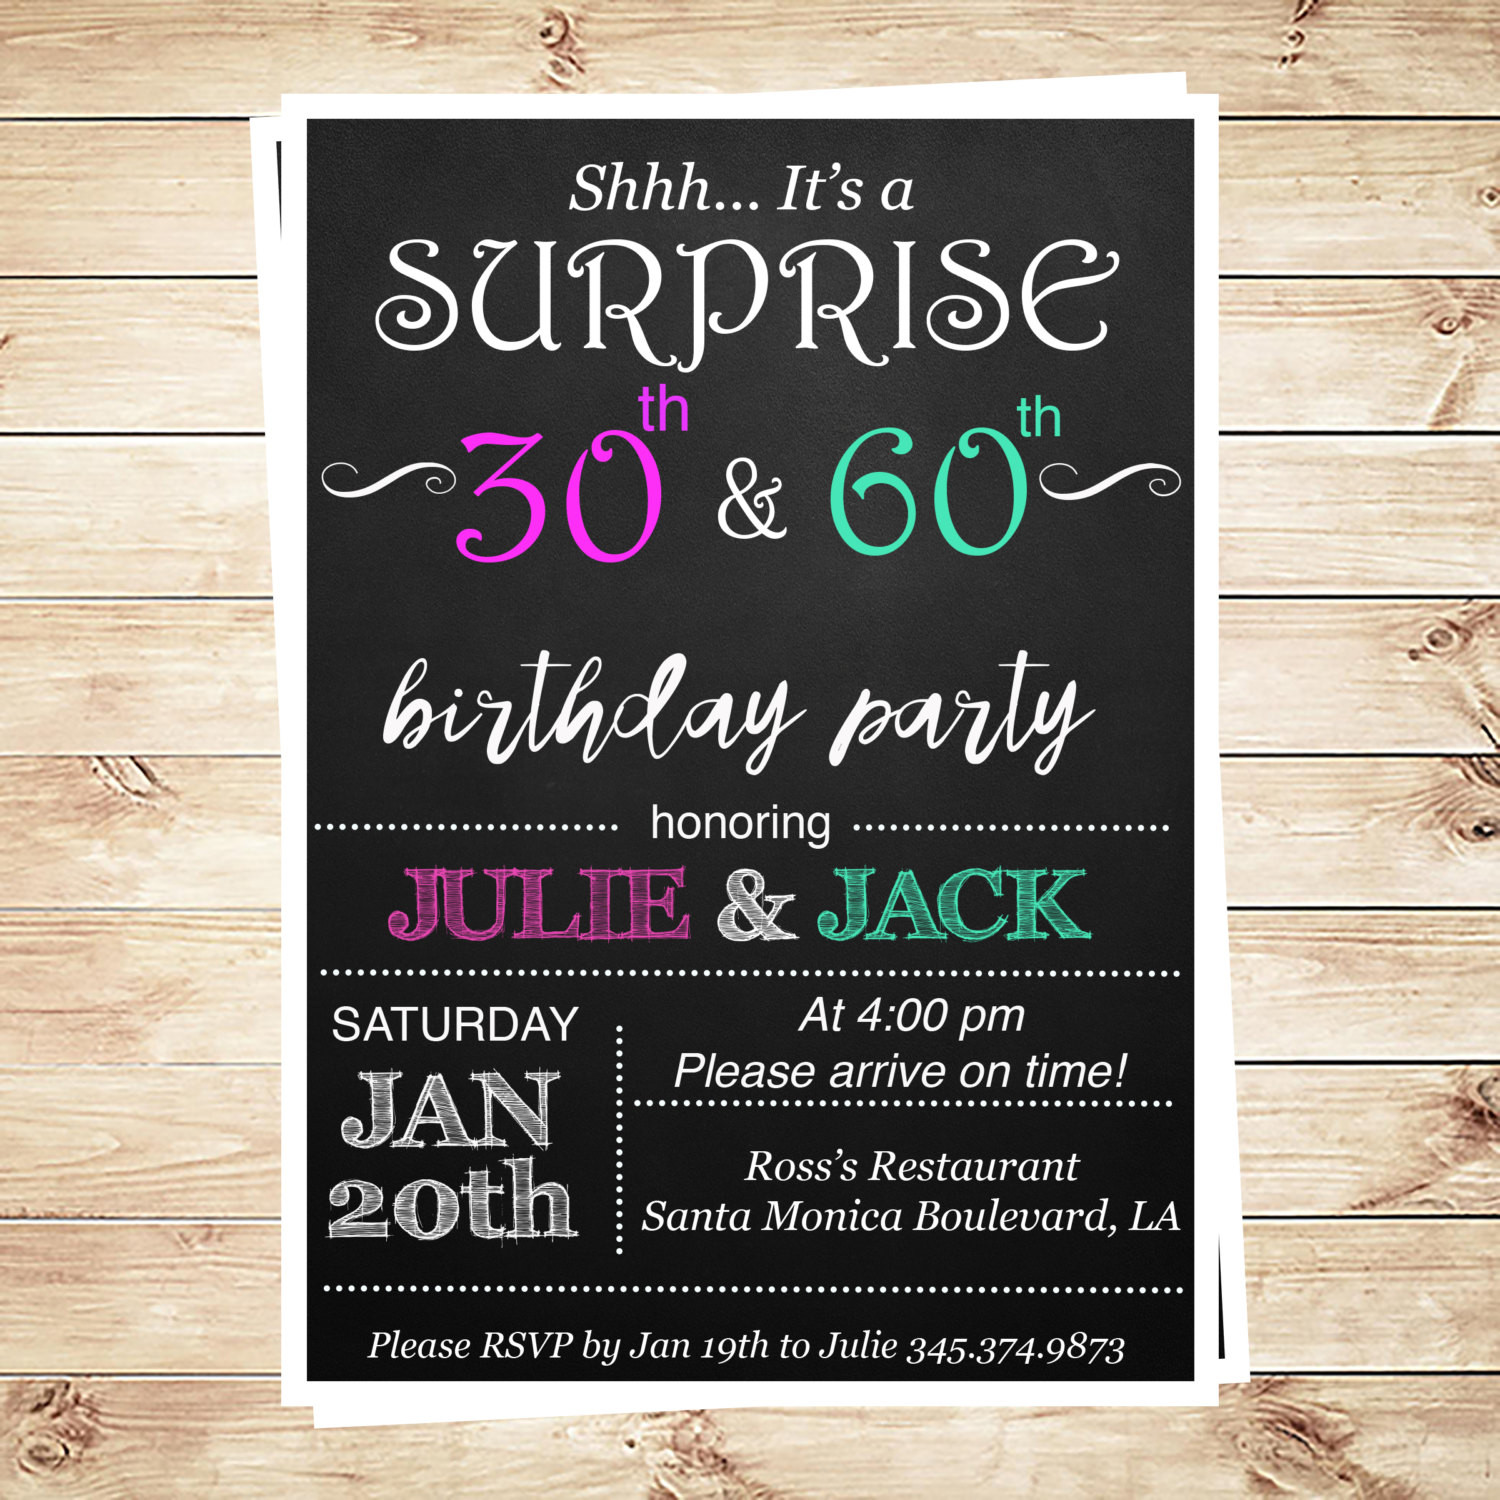 Best ideas about Birthday Invitations For Adults . Save or Pin Joint birthday party invitations for adults by Now.